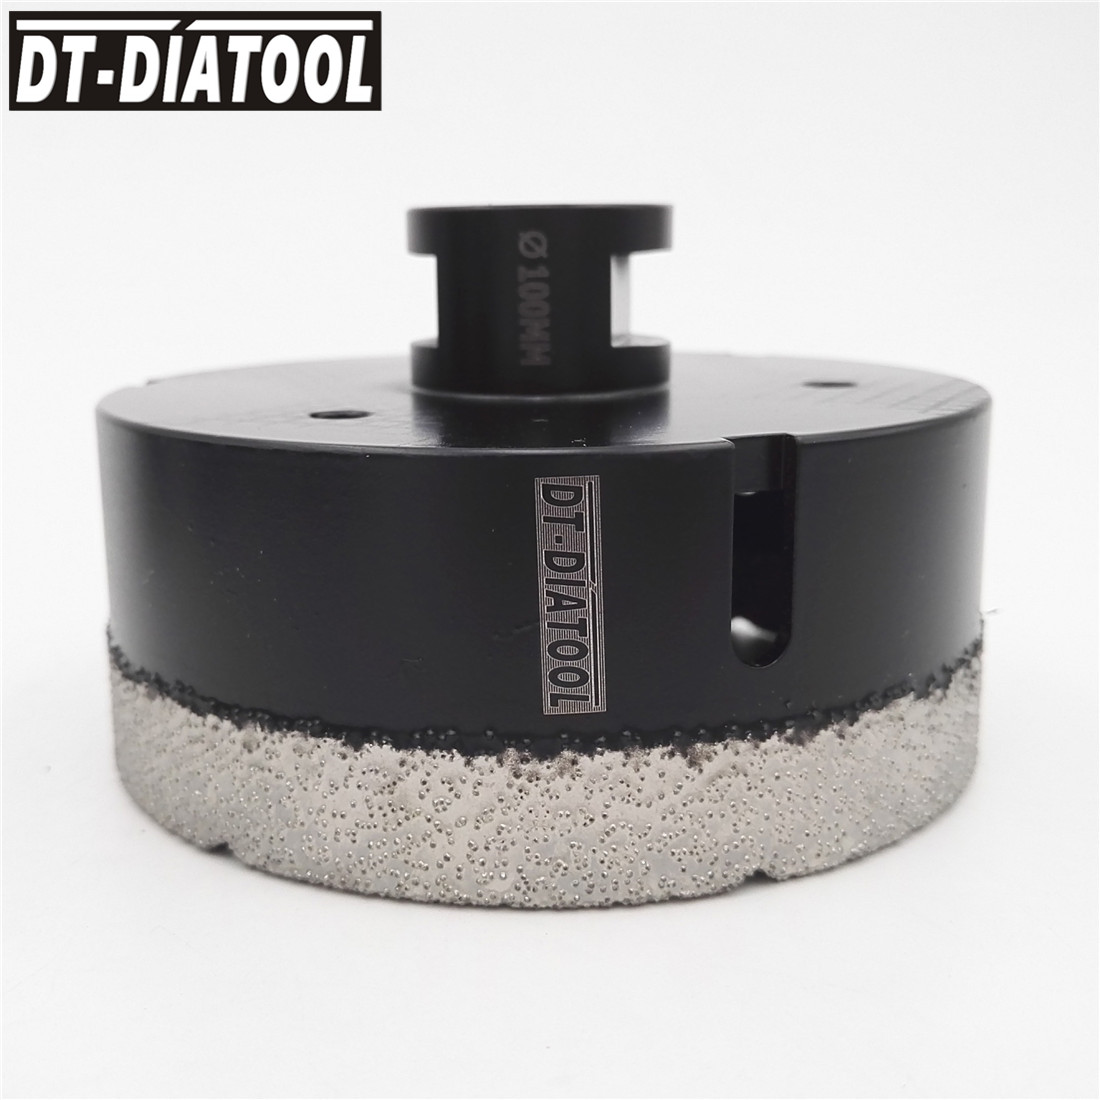 DT-DIATOOL 100mm Dry Vacuum Brazed Diamond Drill Core Bits stone Tile Hole Saw Professional Quality Drilling bits M14 Thread 1pc 110 100mm tct hole saw drill bits core bits for ss plate